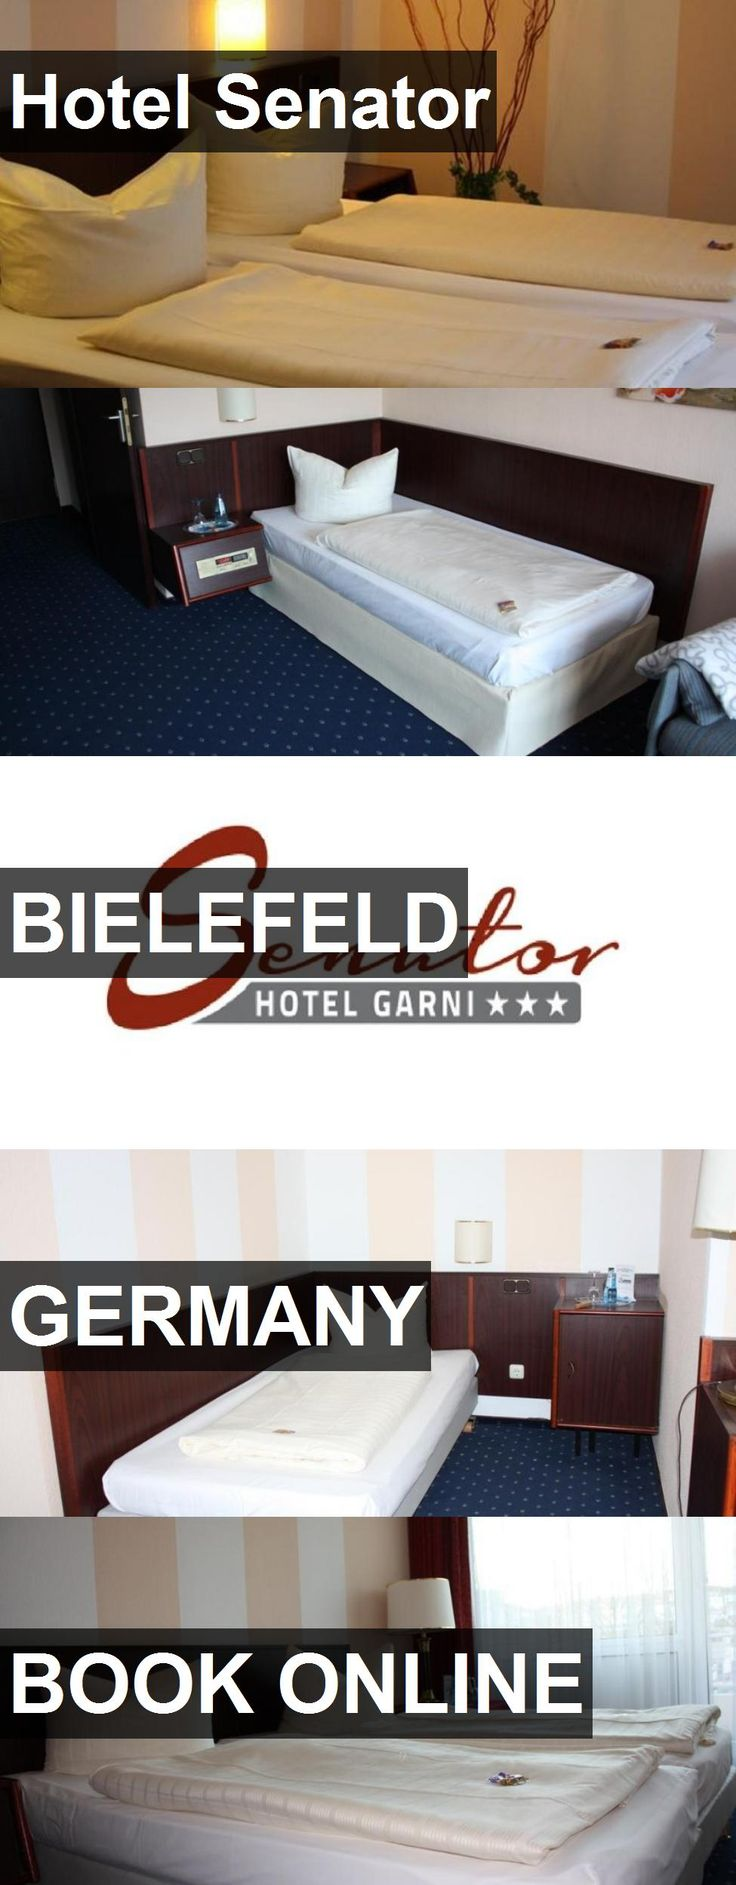 Hotel Senator in Bielefeld, Germany. For more information, photos, reviews and best prices please follow the link. #Germany #Bielefeld #travel #vacation #hotel